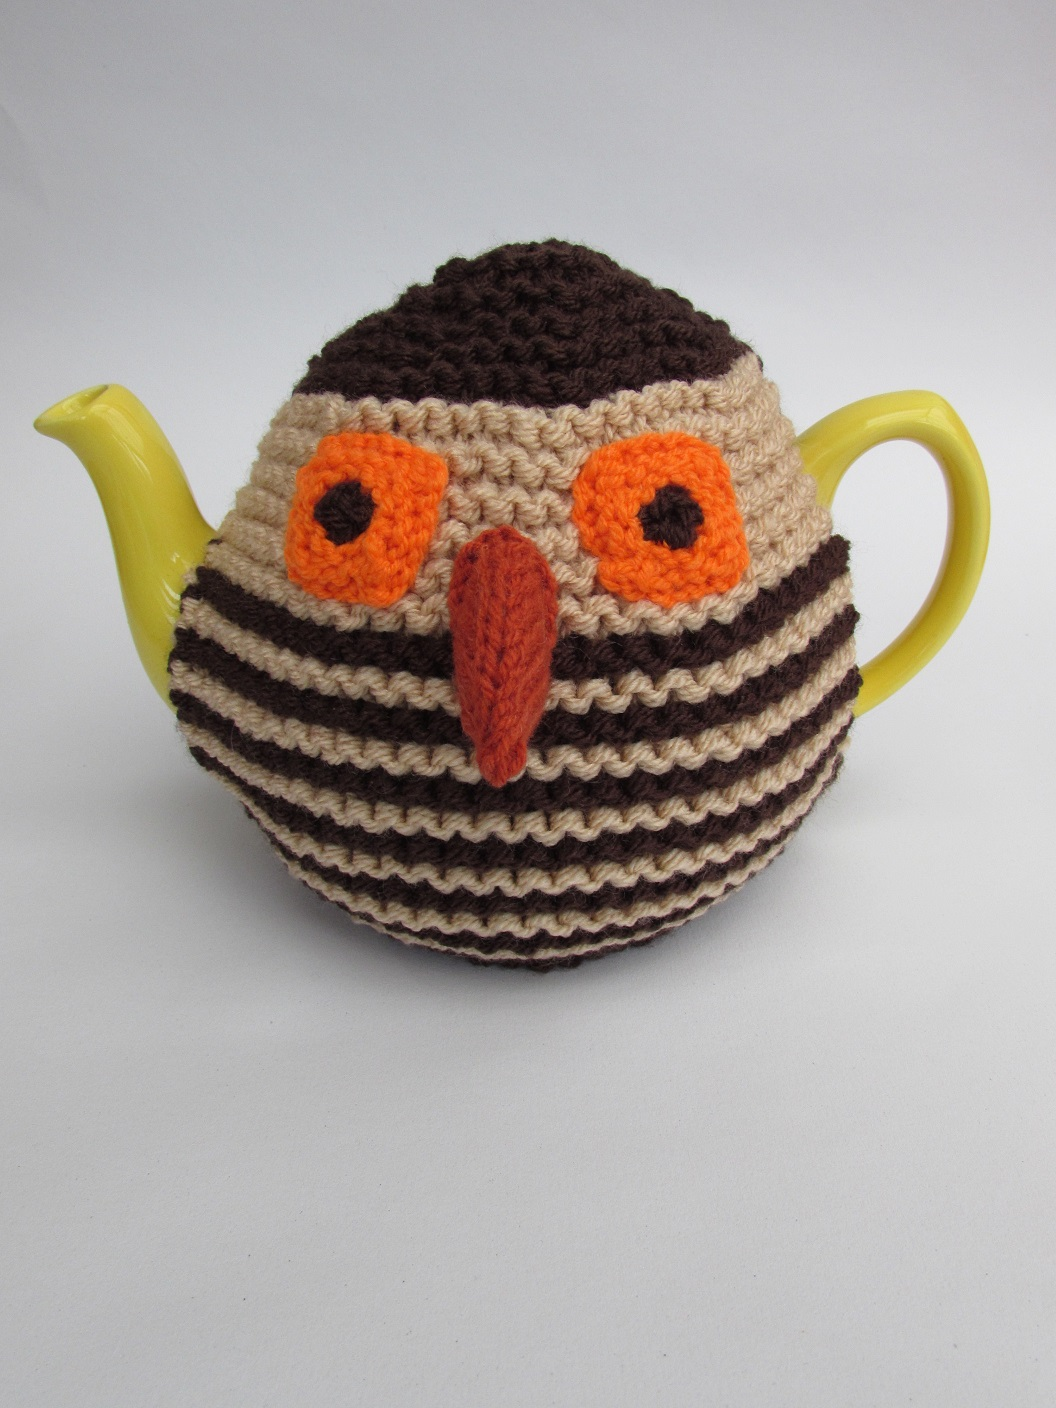 Knitting Pattern For An Owl Tea Cosy : Three Birds tea cosy knitting pattern